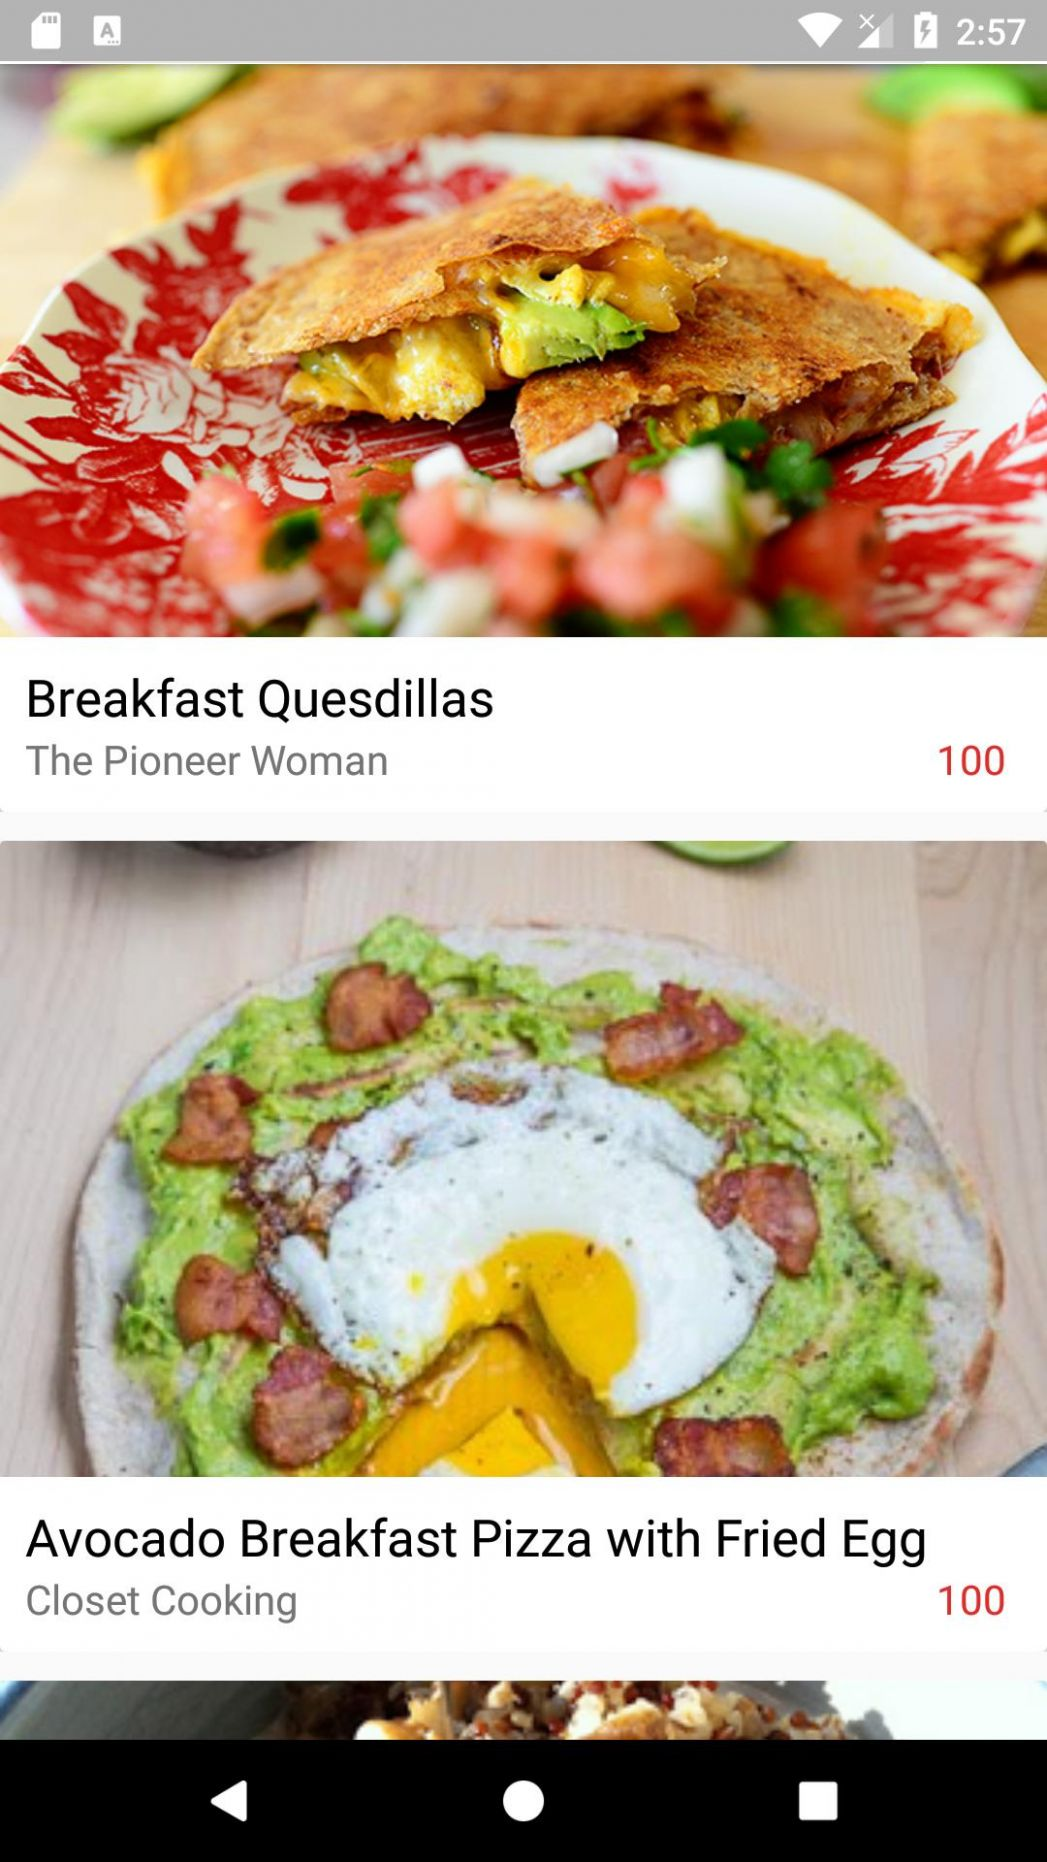 World Food Recipes, Cuisines Worldwide for Android - APK Download - Food Recipes Download